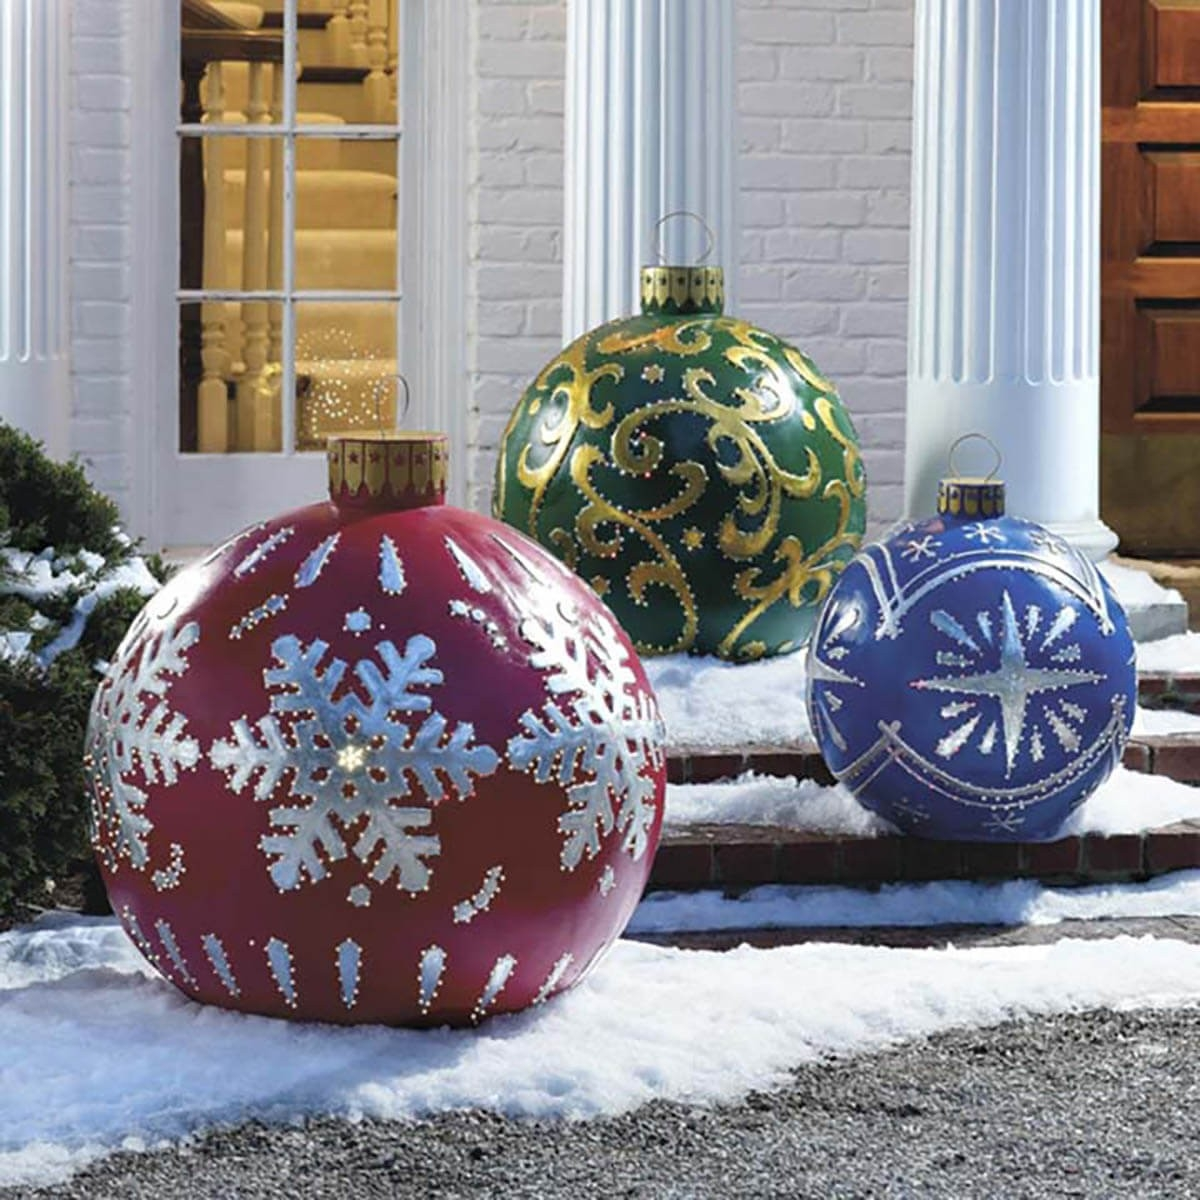 Inflatable Christmas Ornaments Ideas On Foter